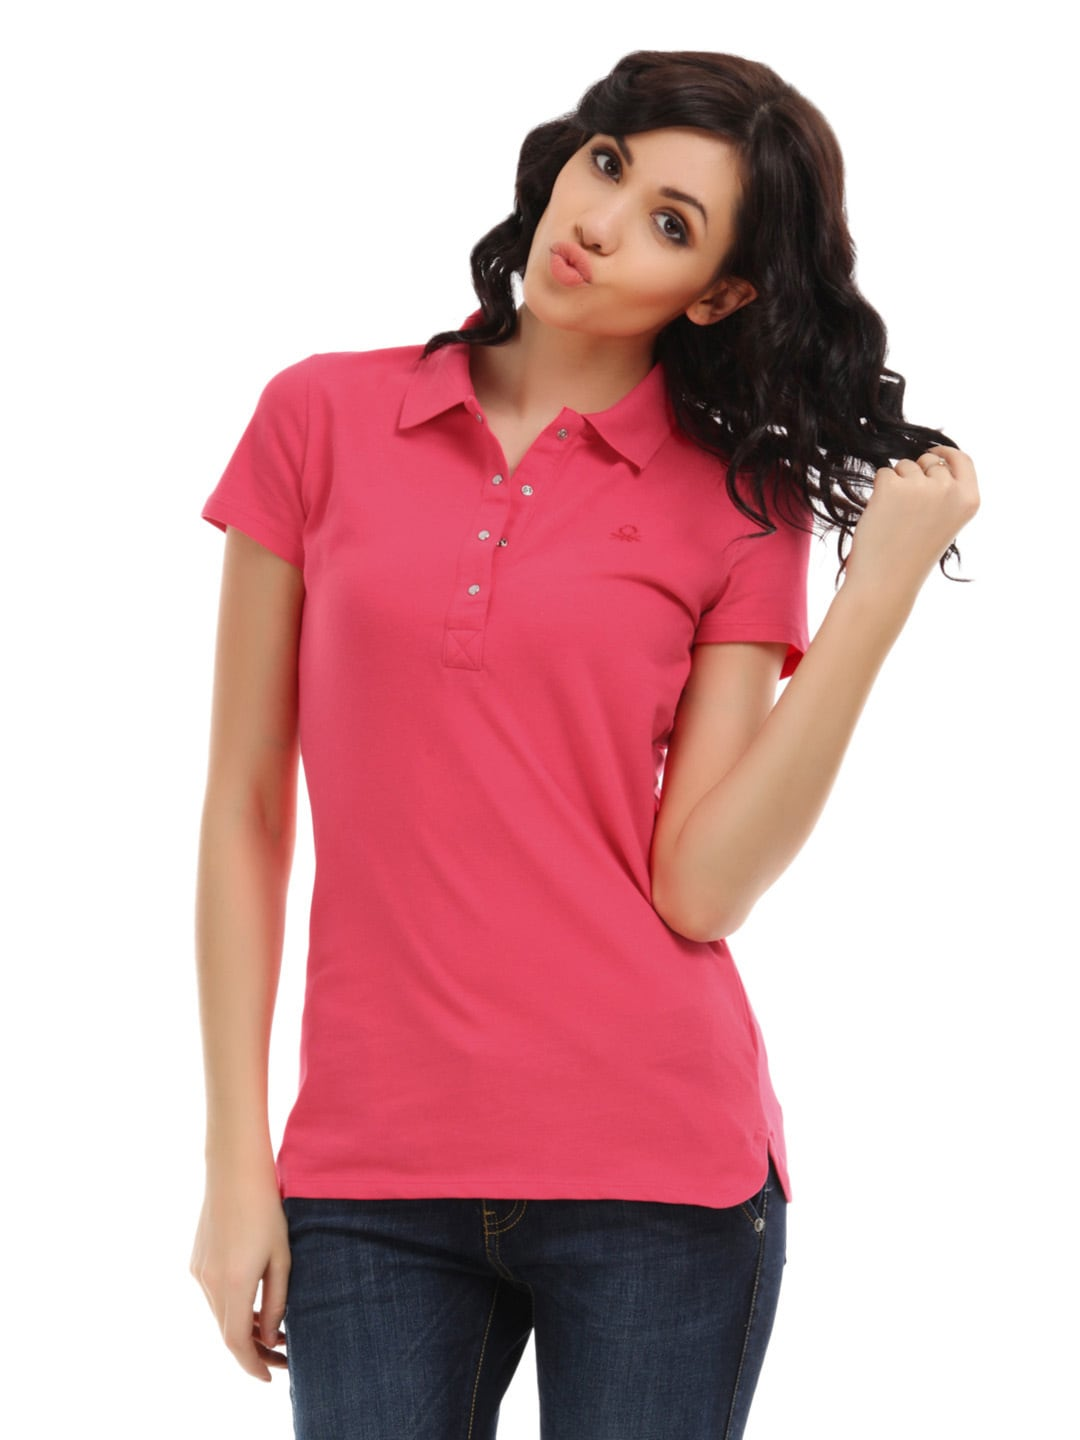 Buy United Colors Of Benetton Women Pink Pique Polo T Shirt 207 Apparel For Women 104420